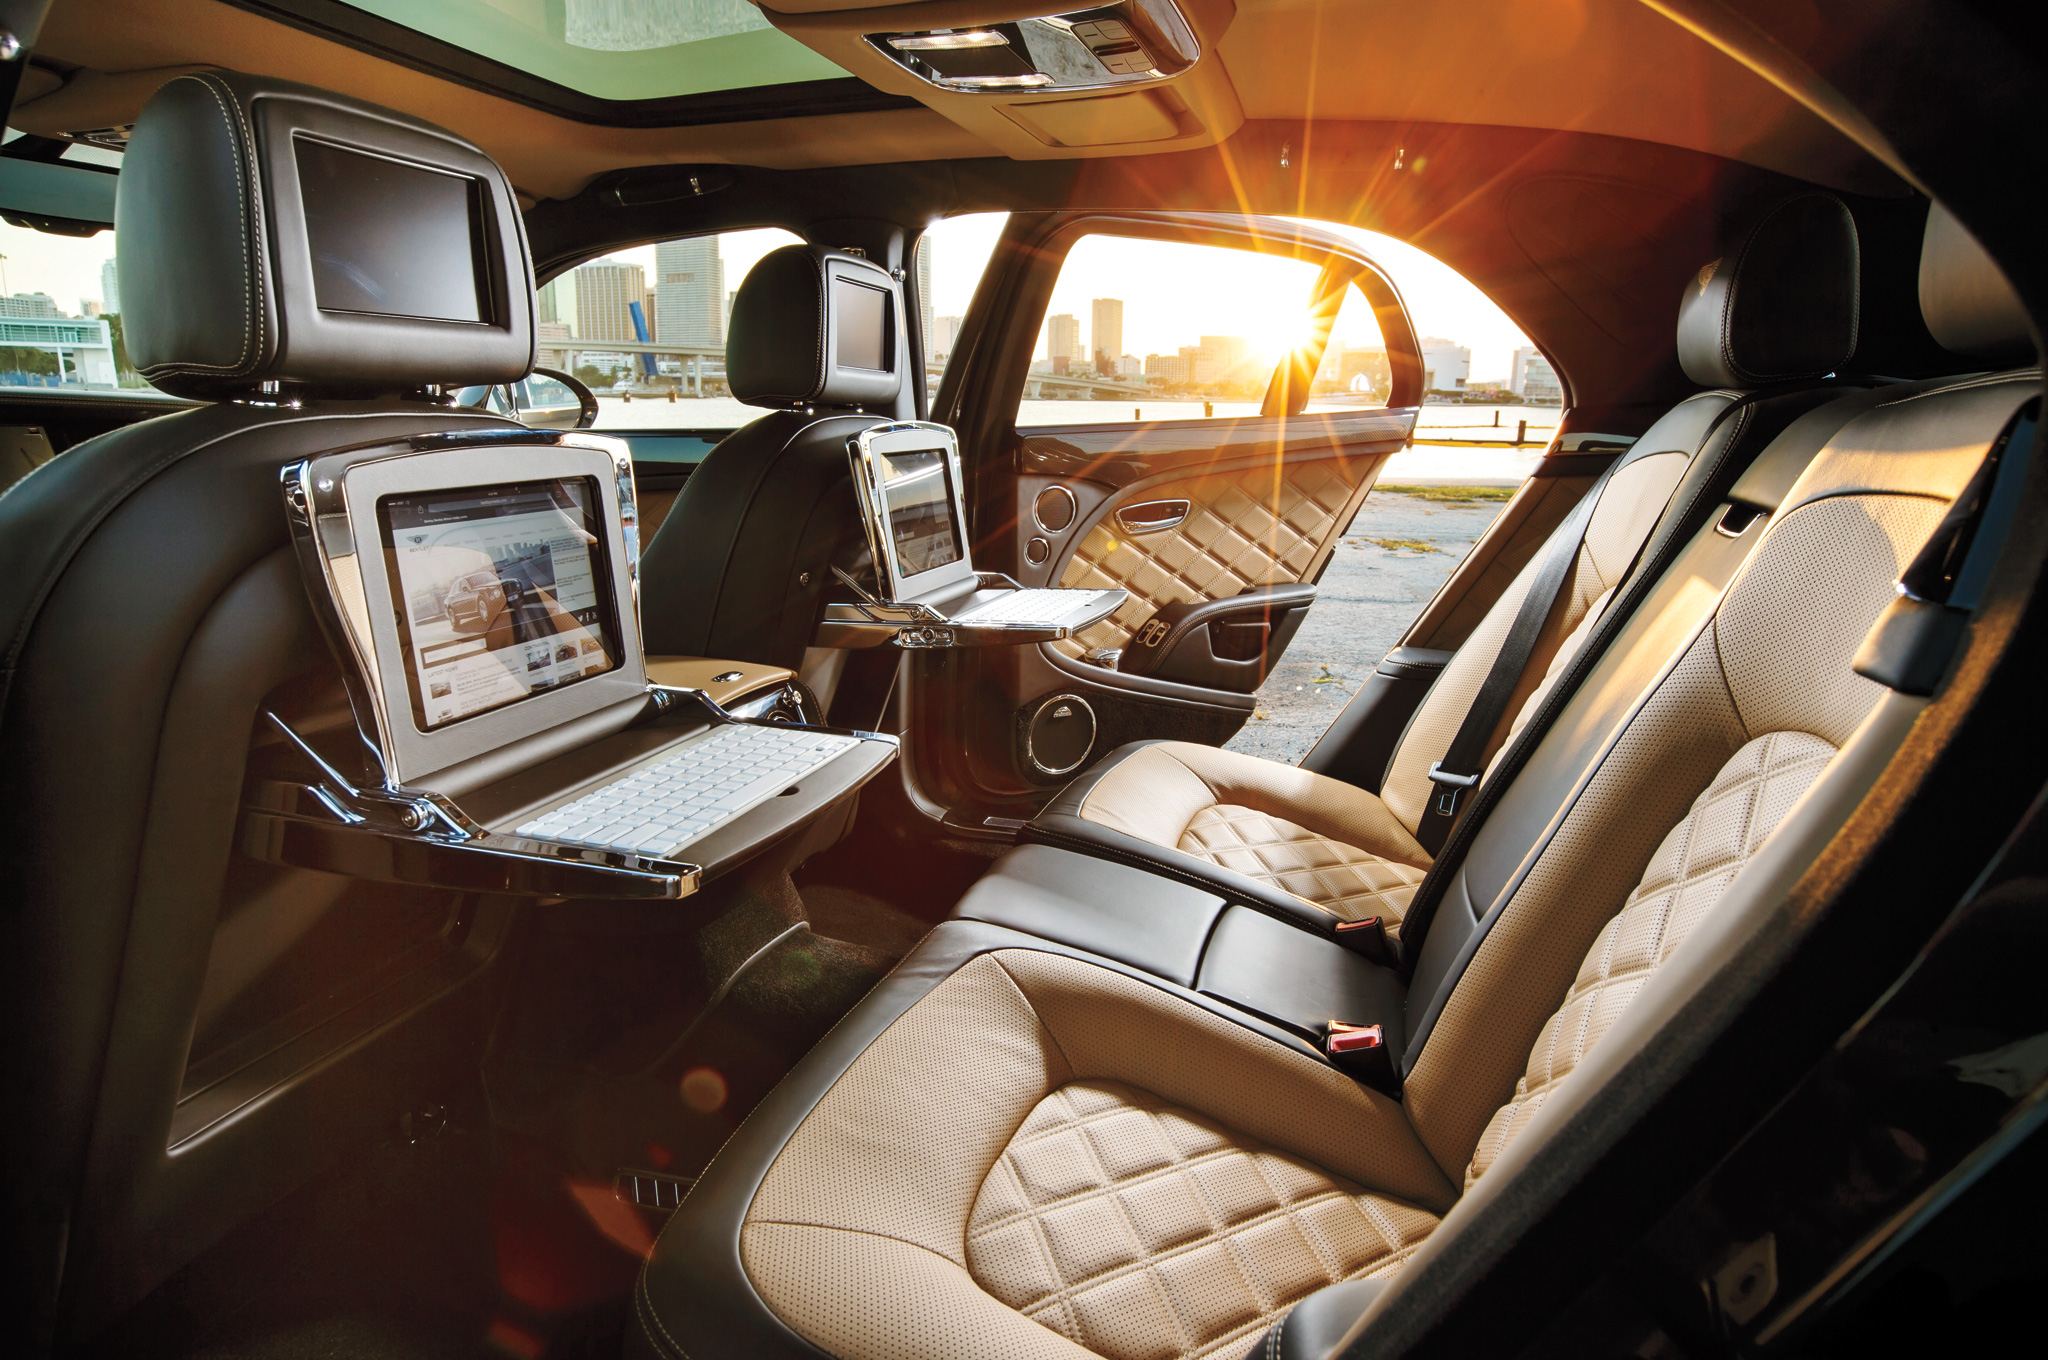 En route to Davos or Cannes, owners can tap on fold-down iPads in a roughly $400,000 mobile office.